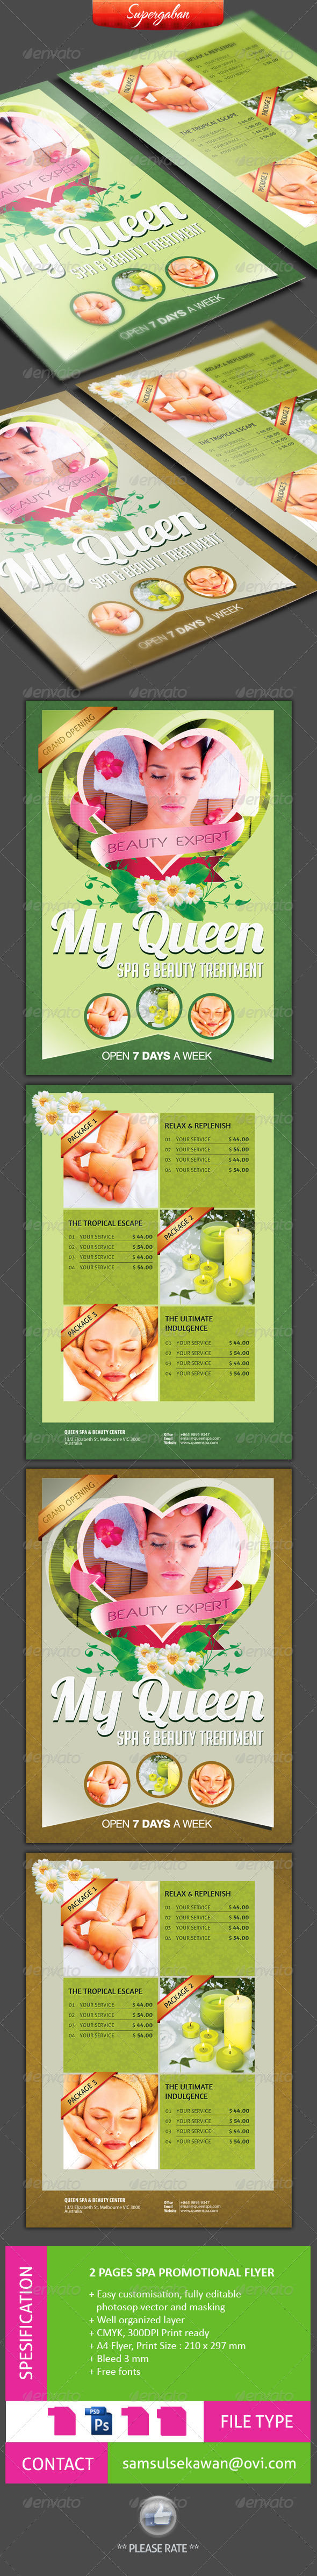 GraphicRiver 2 PAGES SPA PROMOTIONAL FLYER 4594566